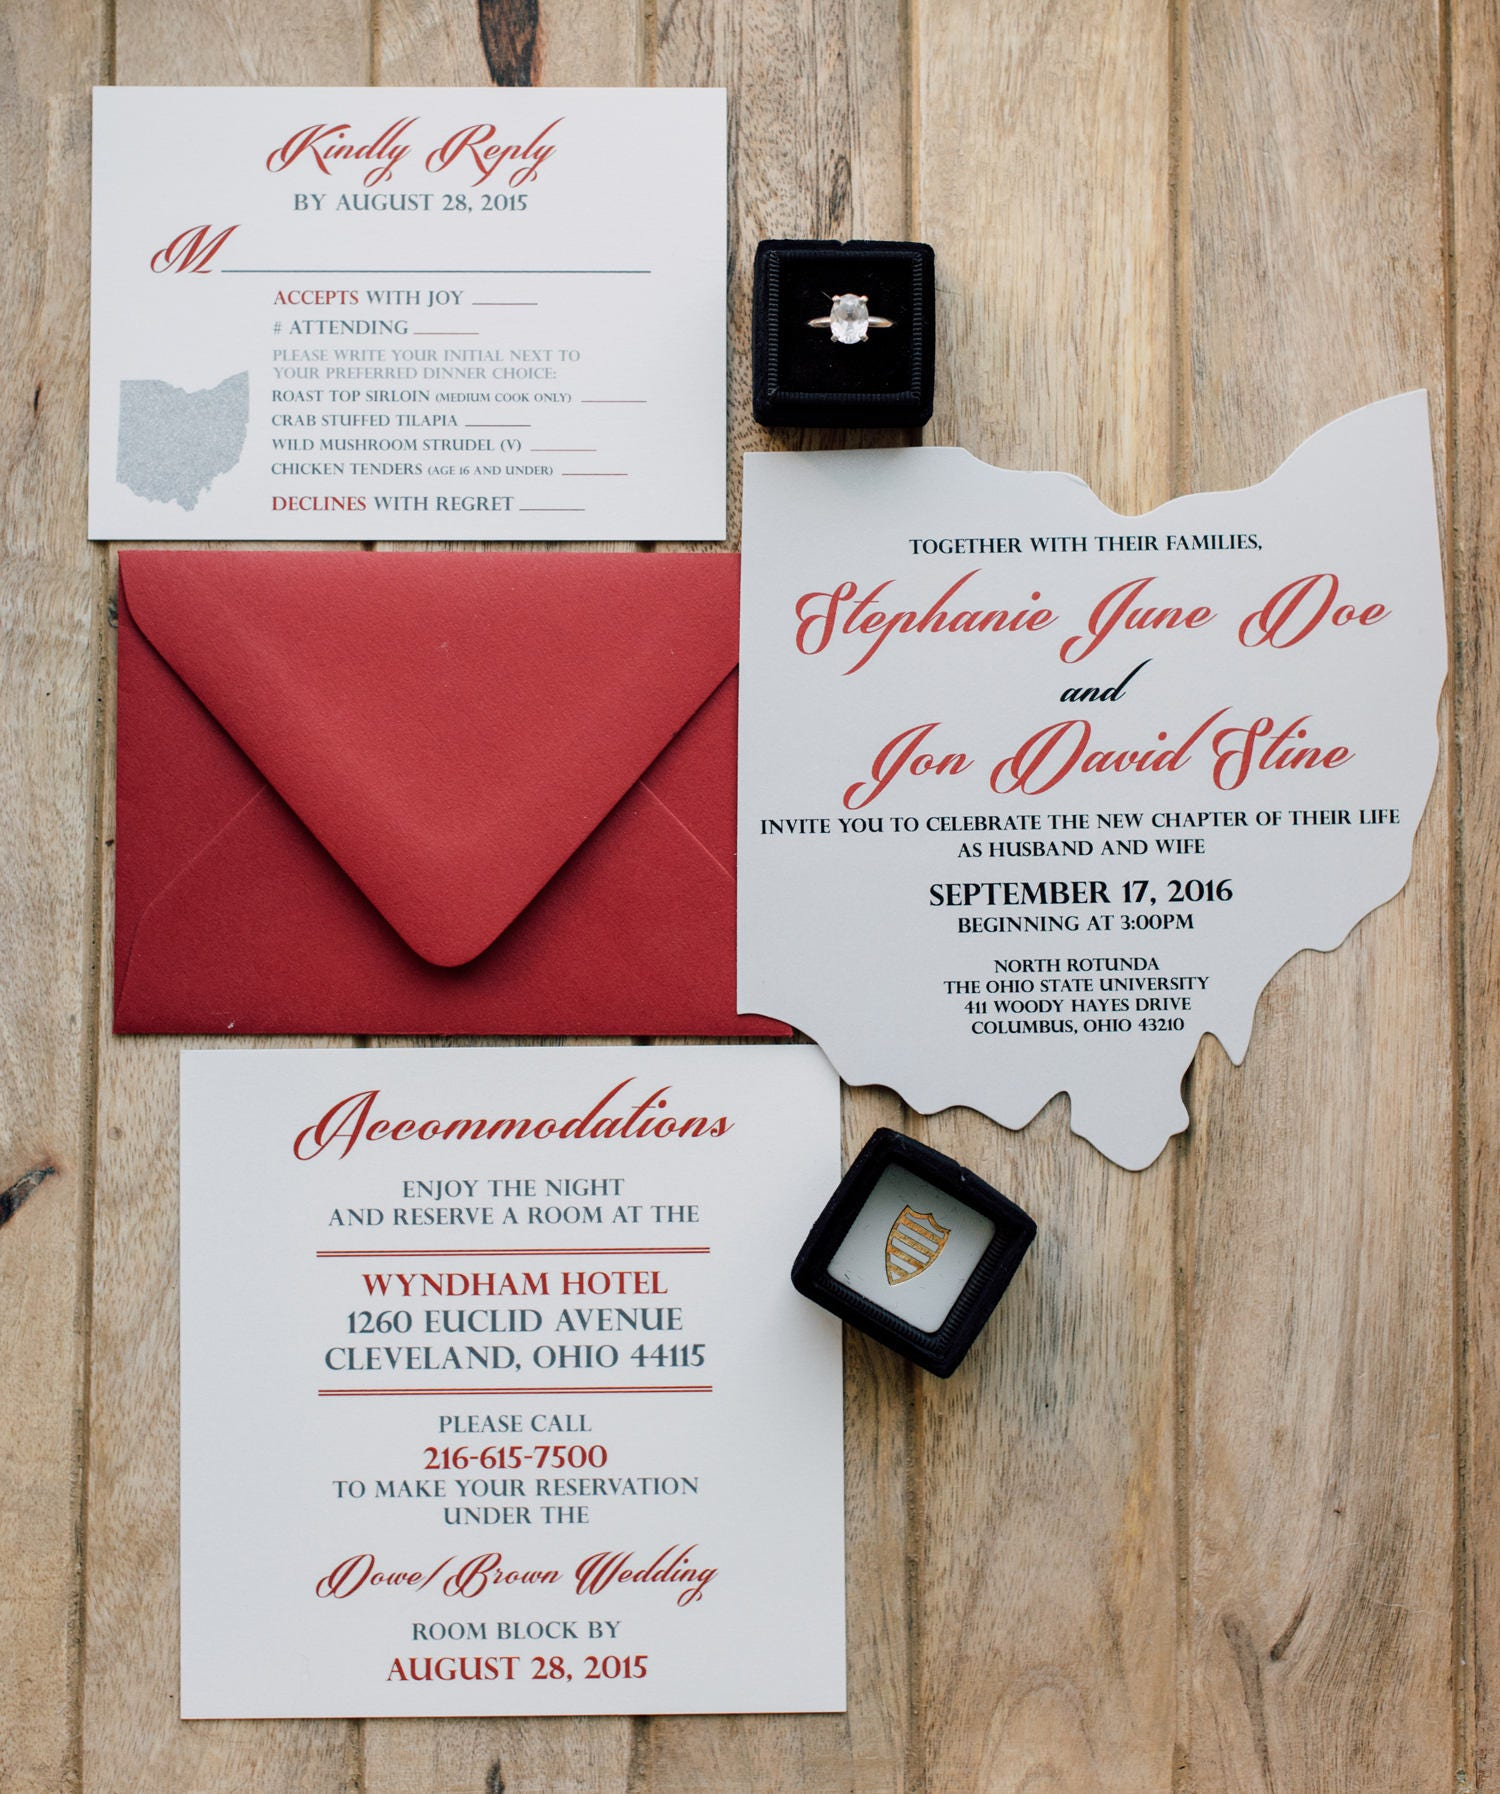 Ohio Cutout Wedding Invitation Scarlet and Grey Wedding